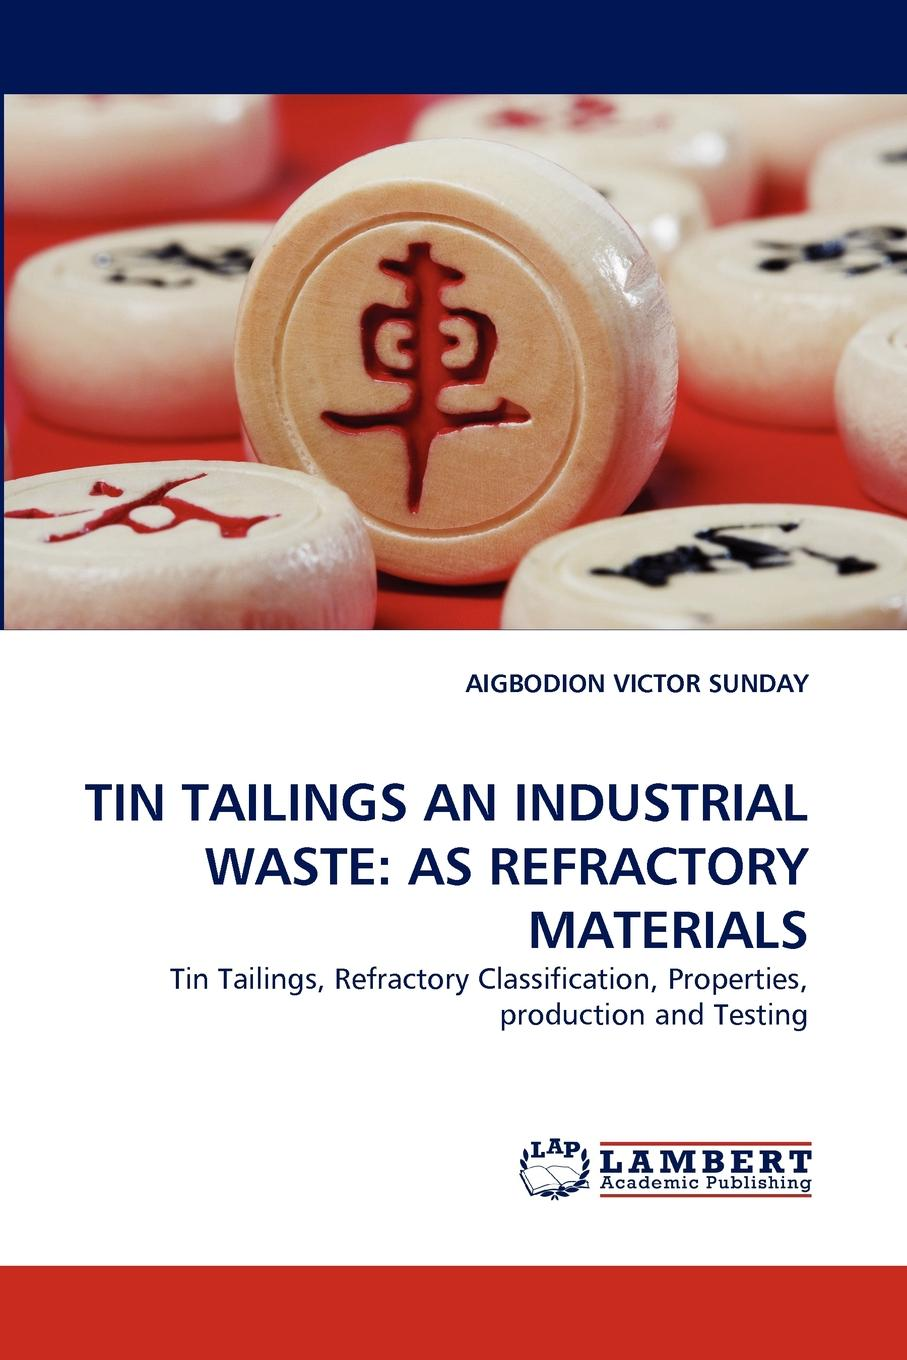 AIGBODION VICTOR SUNDAY TIN TAILINGS AN INDUSTRIAL WASTE. AS REFRACTORY MATERIALS mostafa redwan hardpan formation in mine tailings